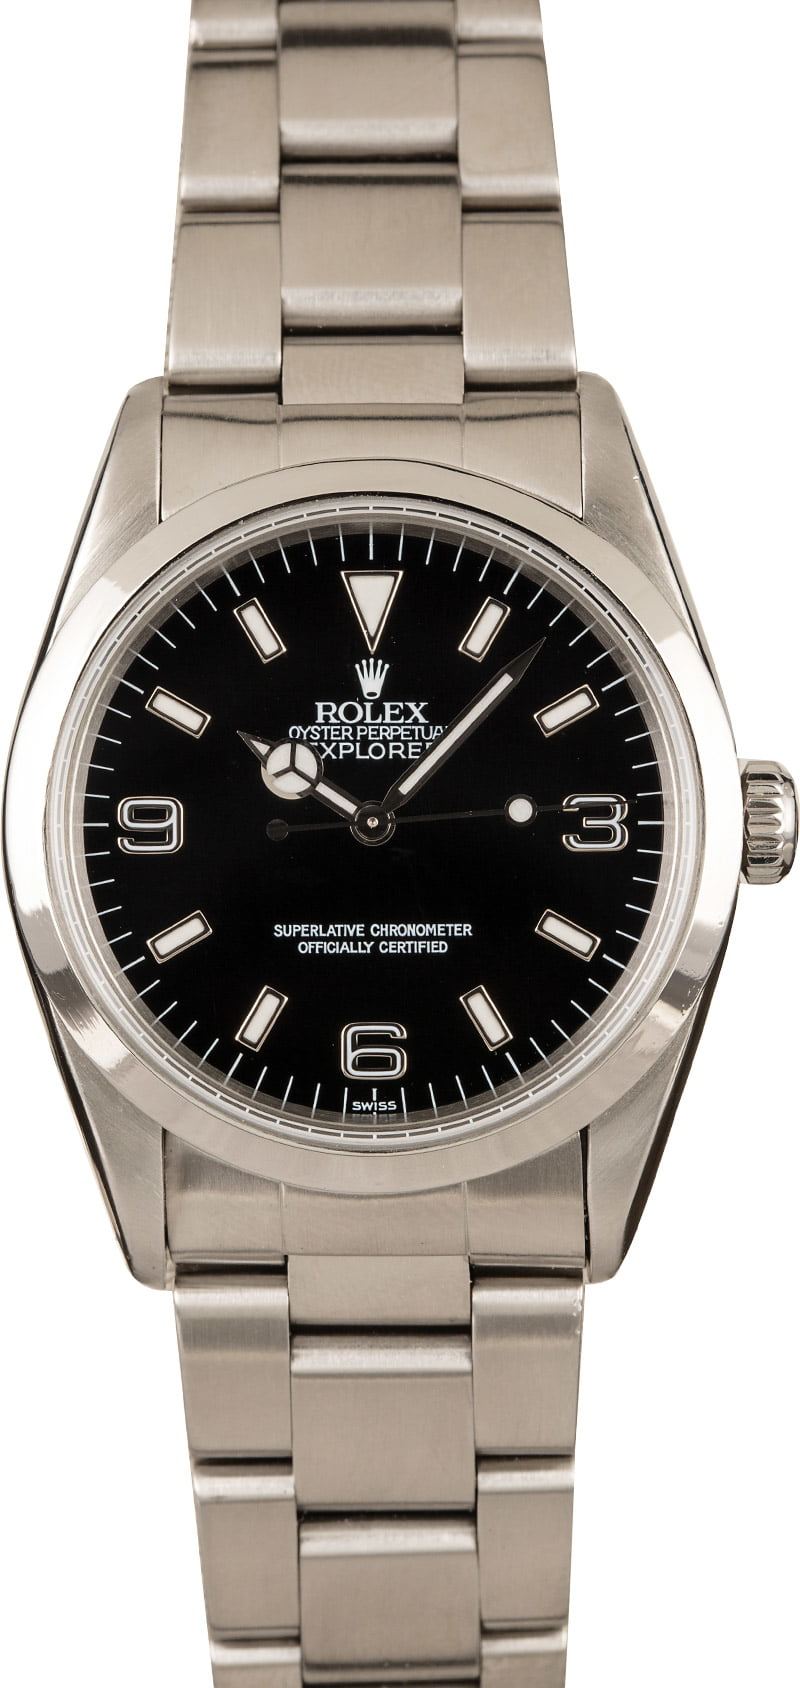 Top Pre-Owned Rolex Watches for Investment 2020